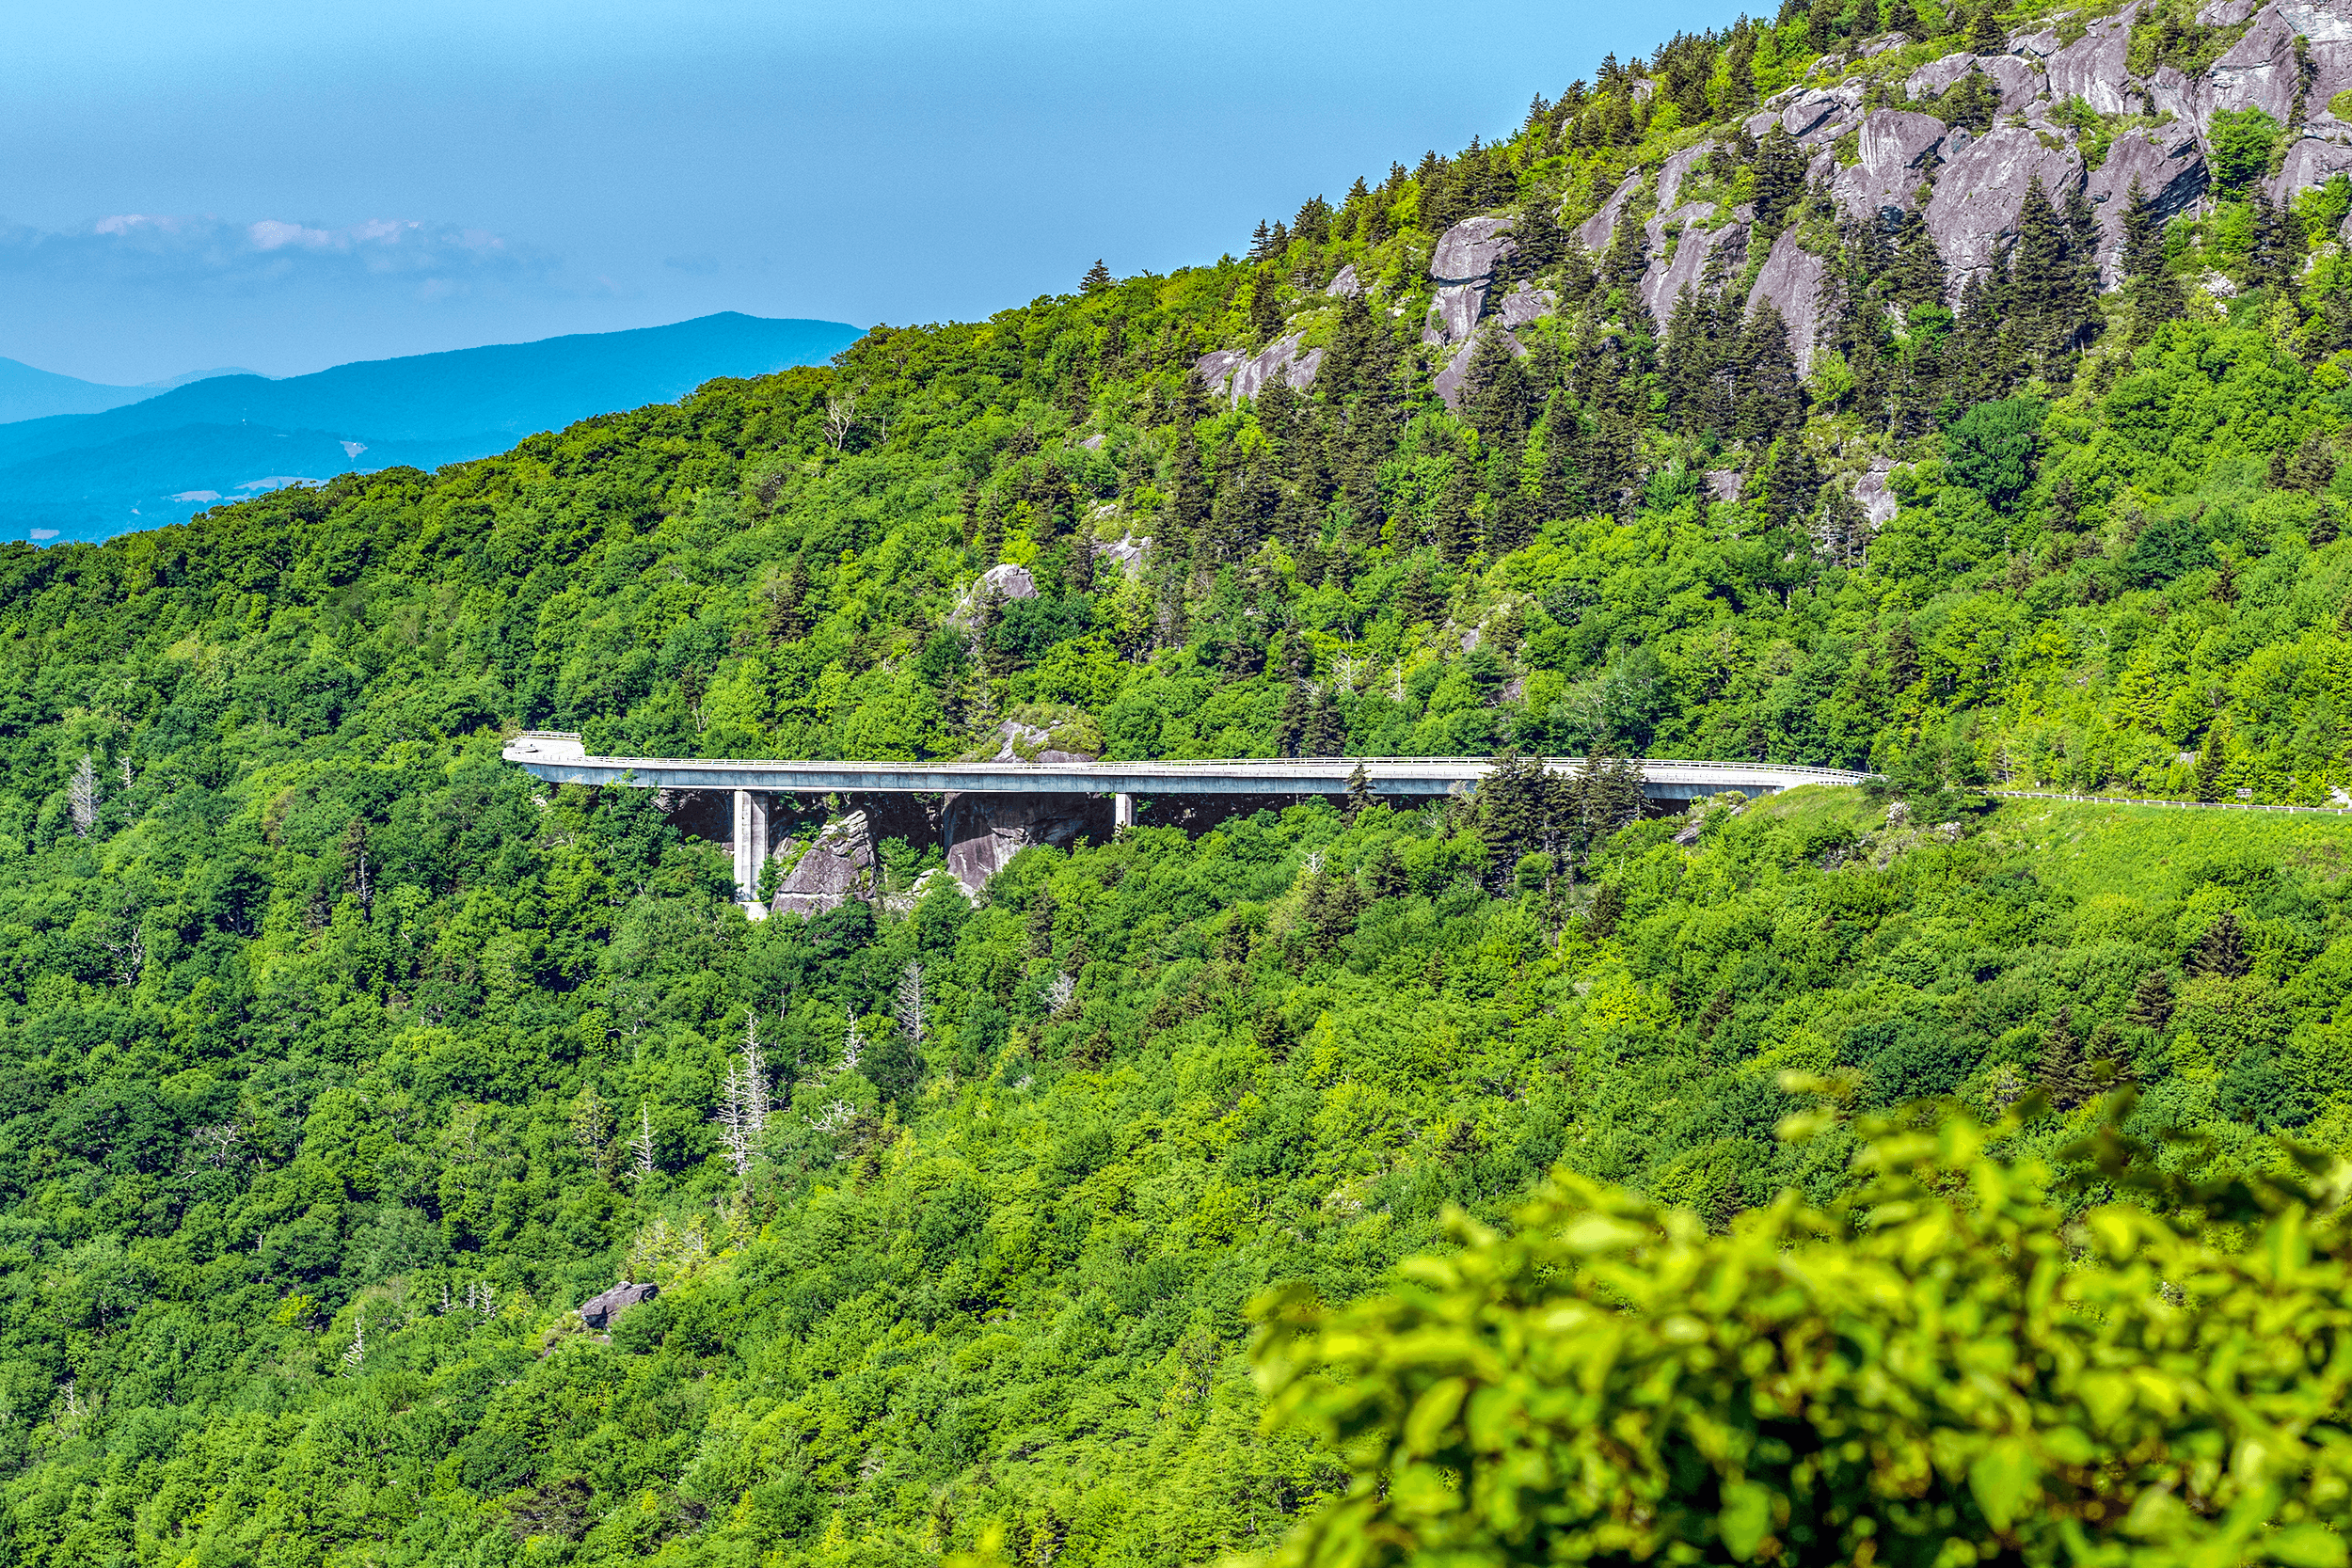 The  Linn Cove Viaduct  was the last unfinished section of the Blue Ridge Parkway. After a delay of 20 years and eight years of construction, it was completed in 1987. It is shaped like a snake following but not touching the slopes of  Grandfather Mountain . The viaduct has won 11 design awards and is one of the most photographed sites along the  Blue Ridge Parkway .